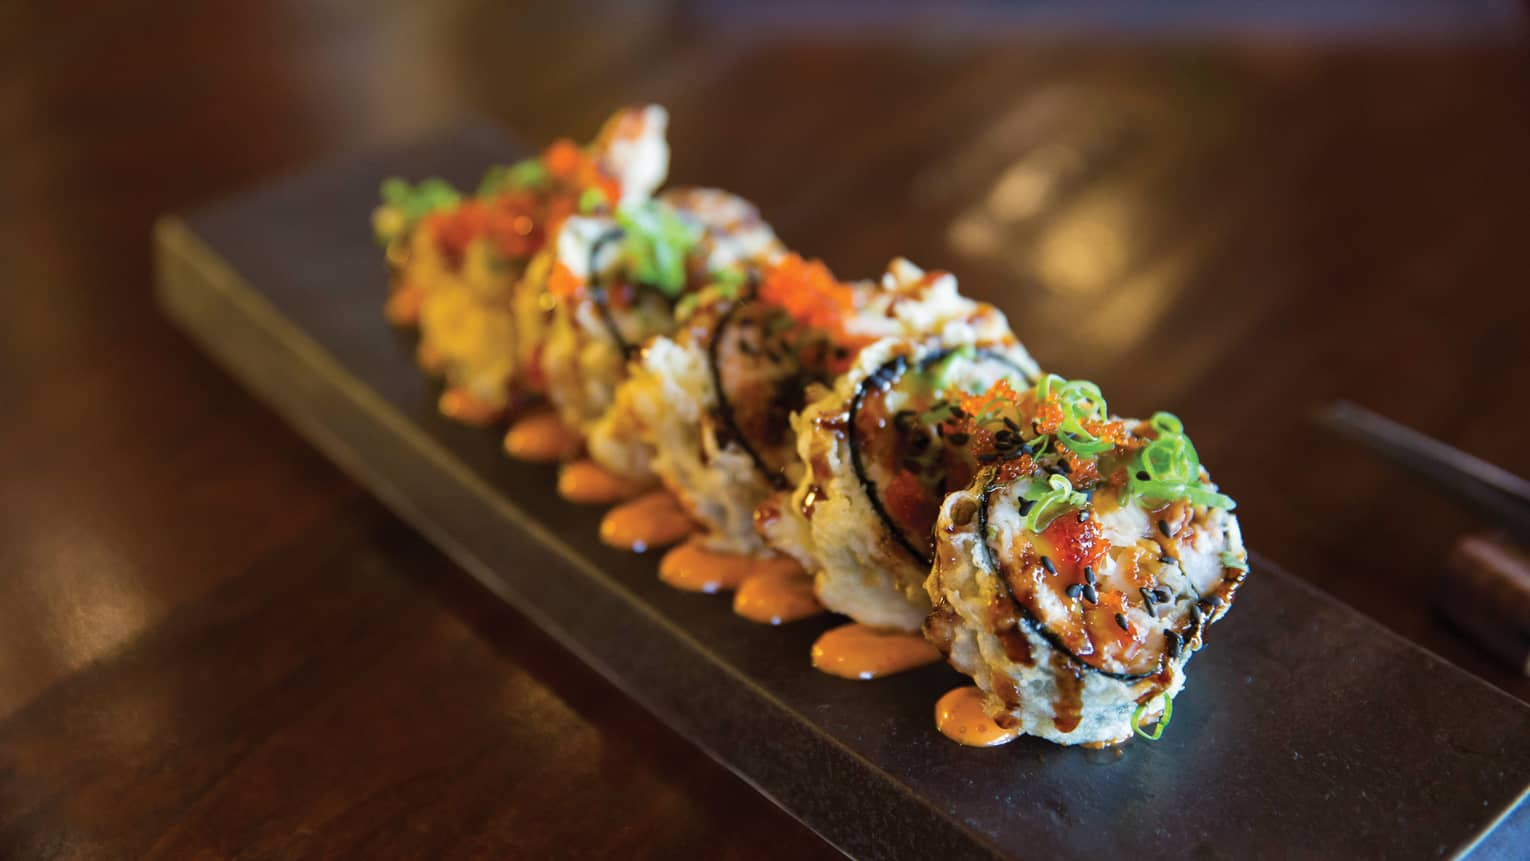 Crunchy shrimp sushi rolls arranged on long tray, orange sauce